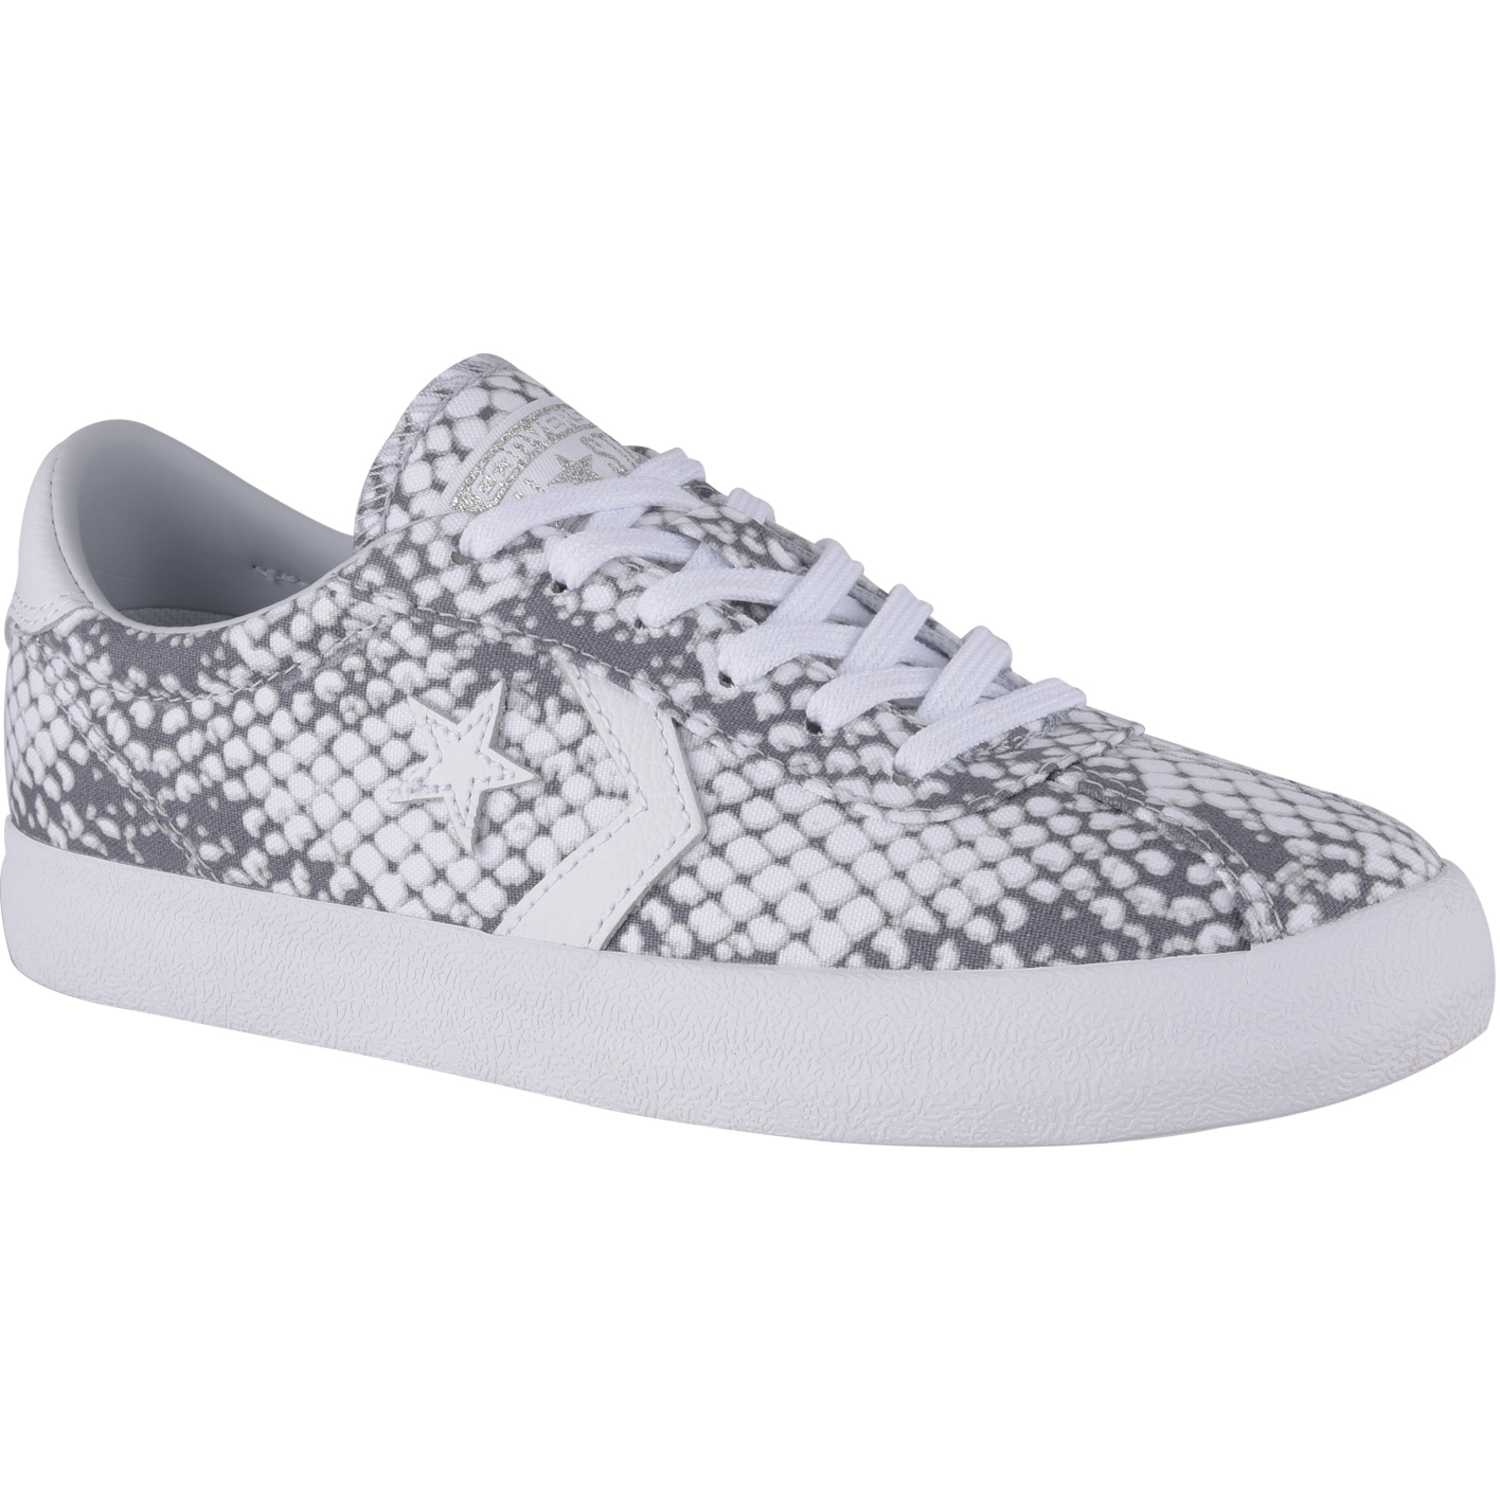 06a7eb44d4c Zapatilla de Jovencita Converse Plateado   blanco break point animal print